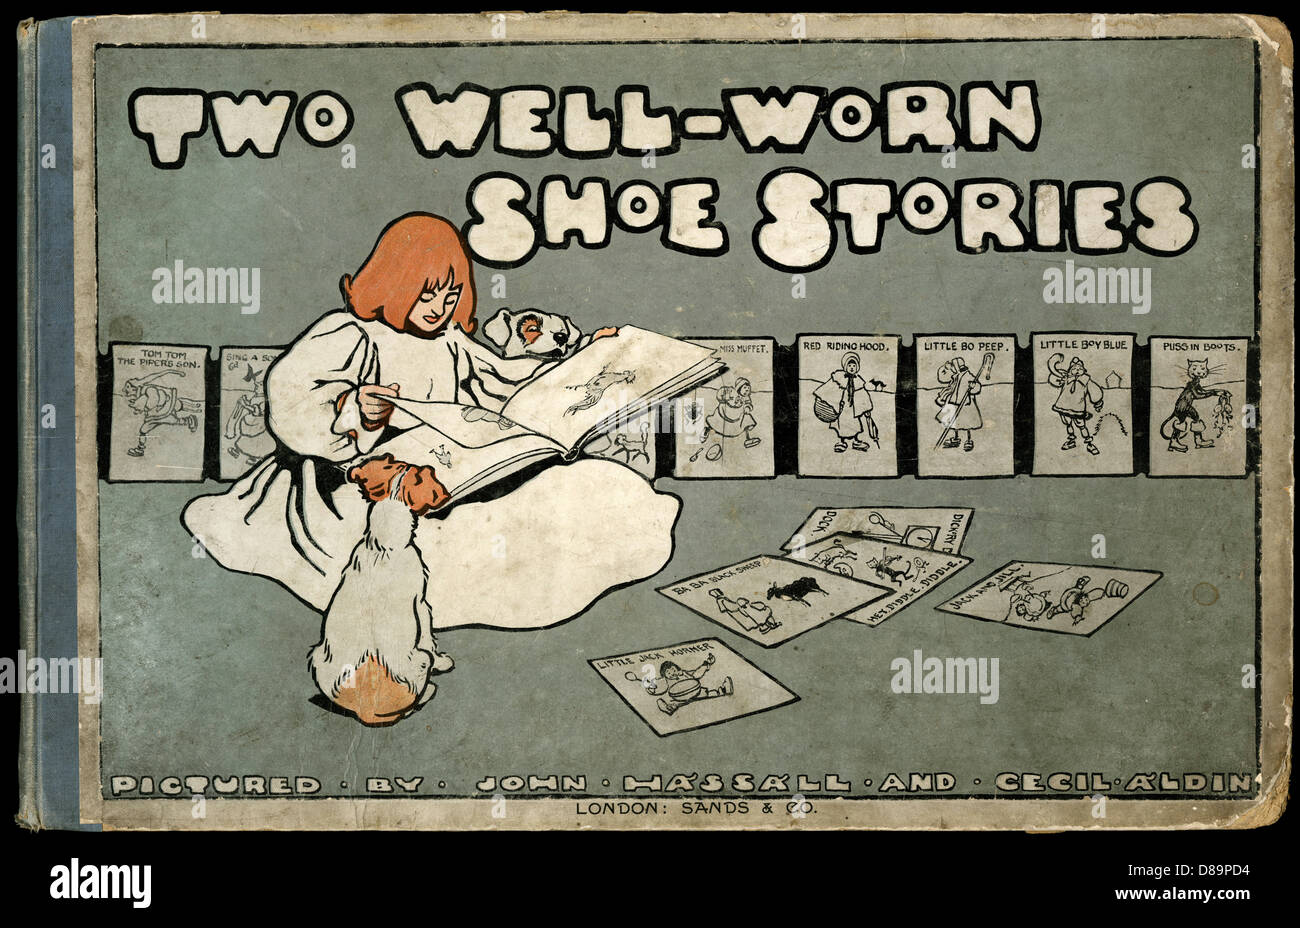 Book Cover Design  Two Well Worn Shoe Stories - Stock Image